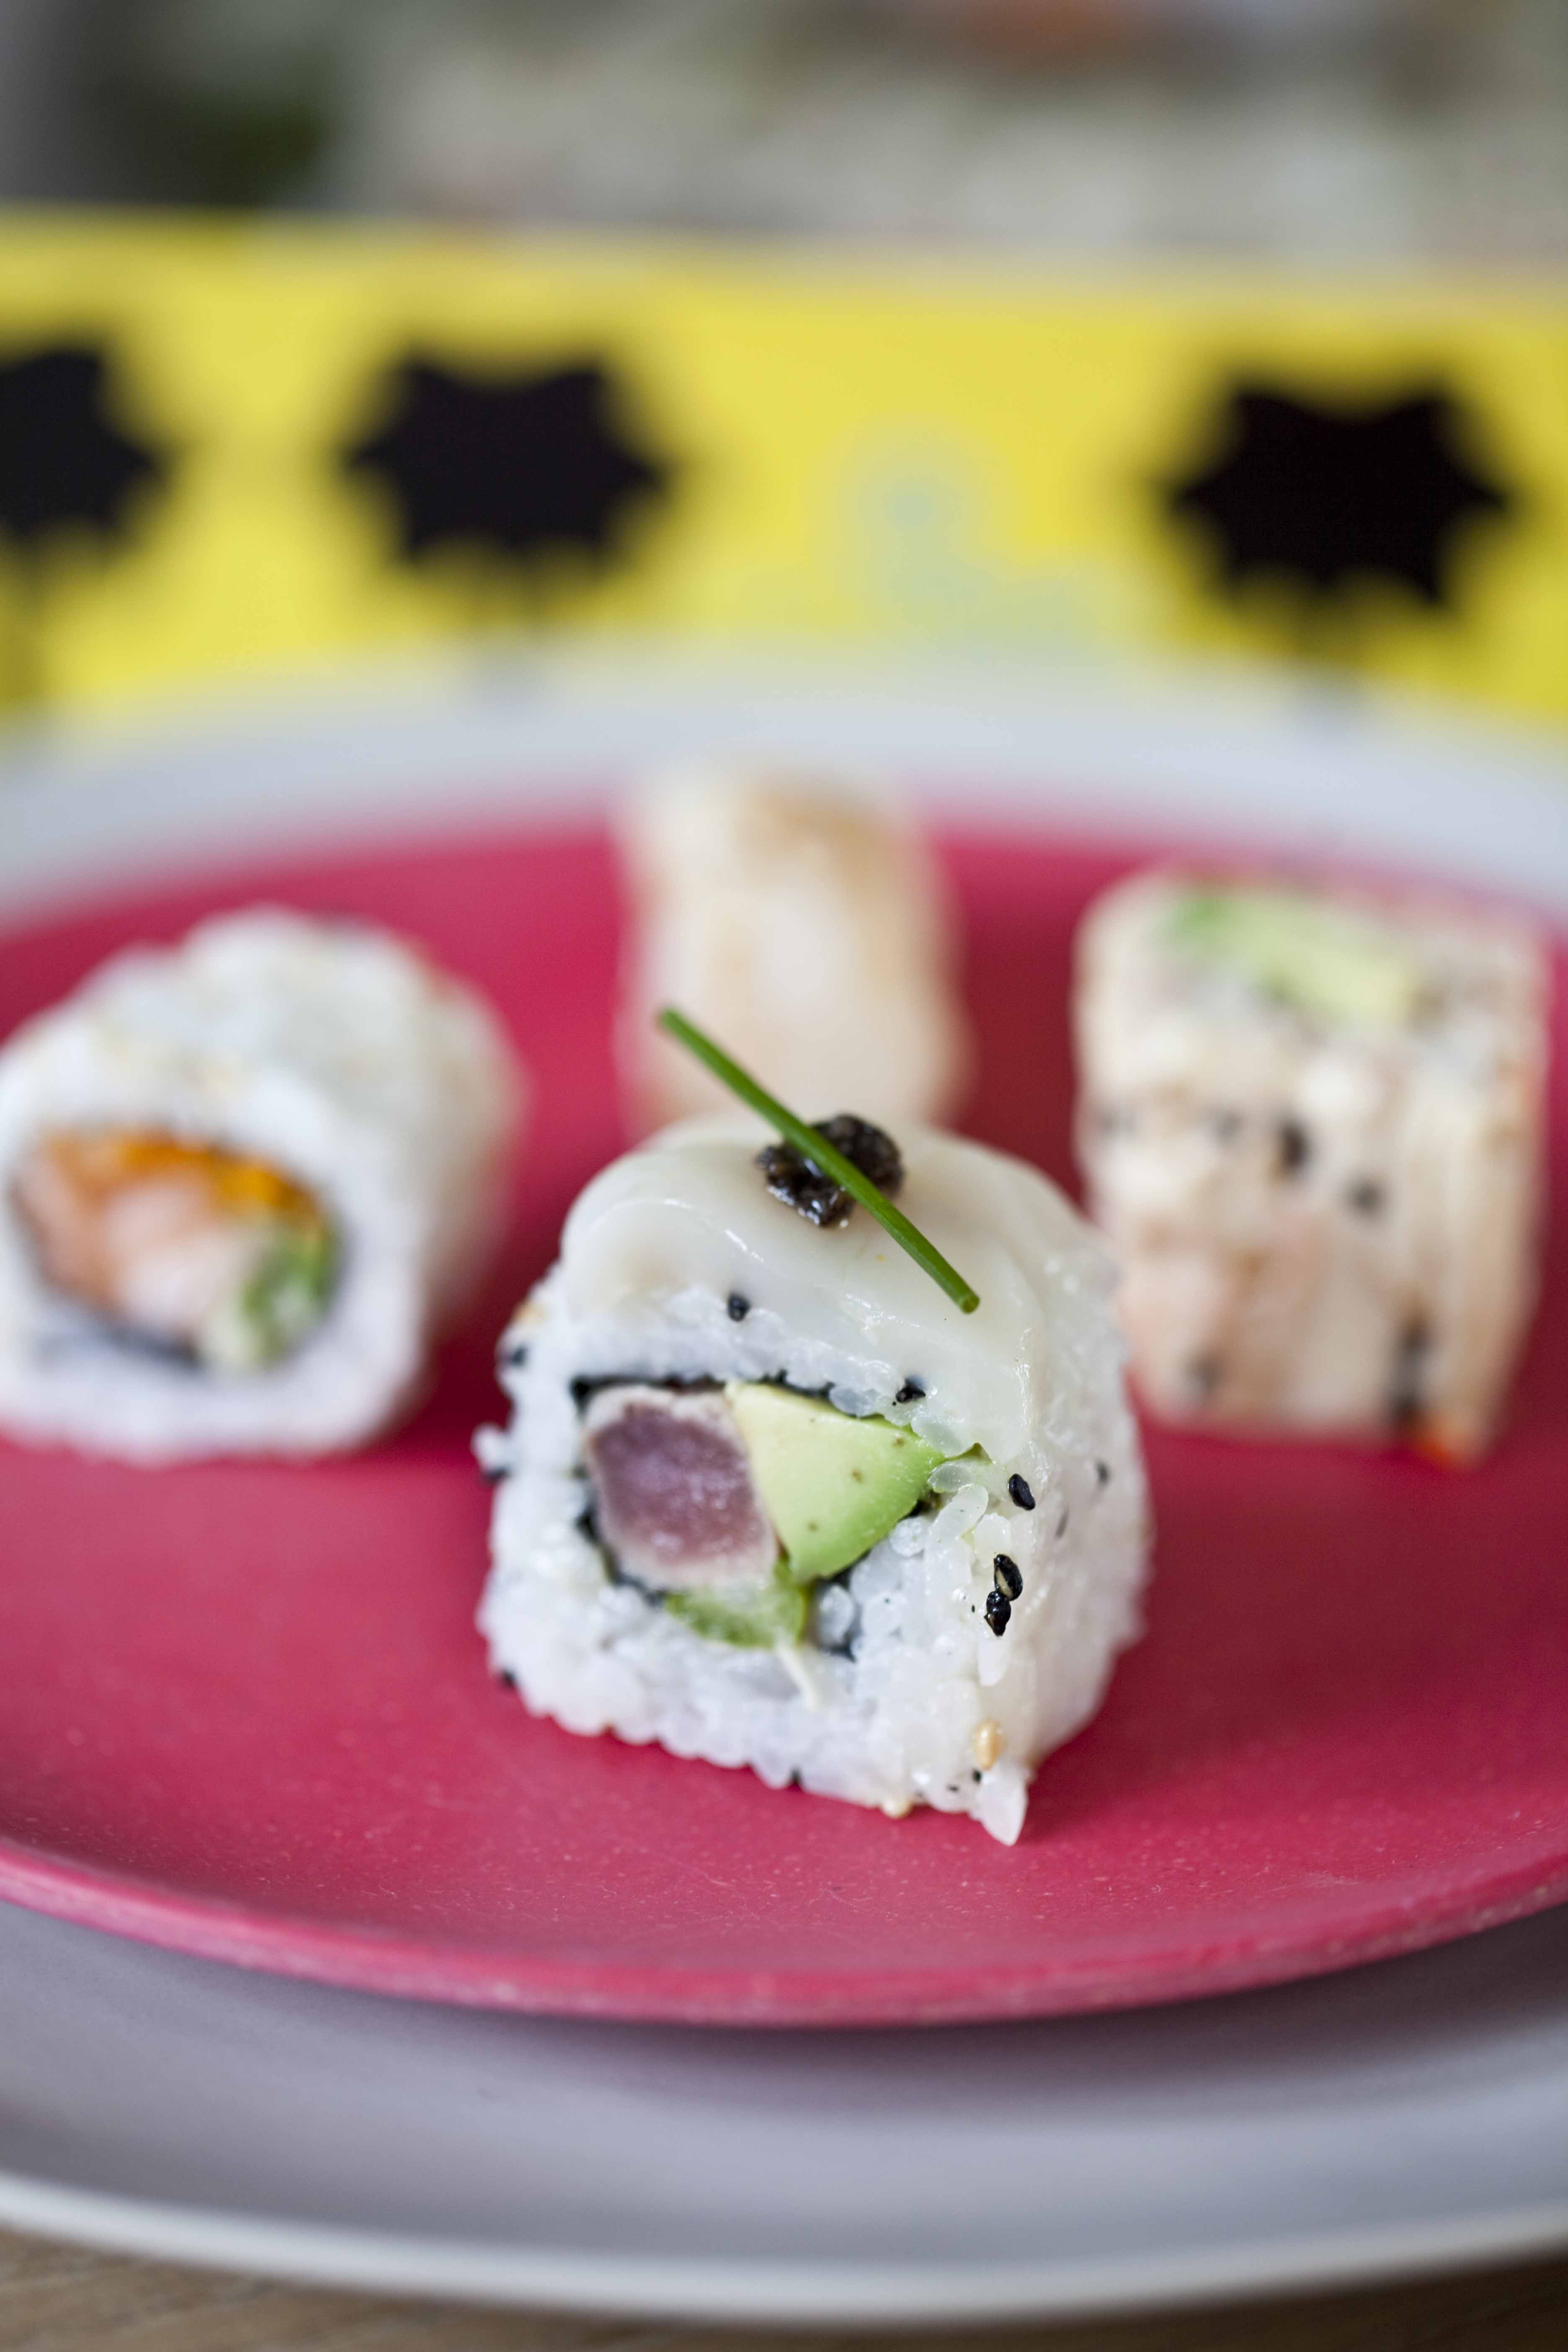 Sushi Shop La La Box Los Angeles Et Les Nouvelles Lunch Box